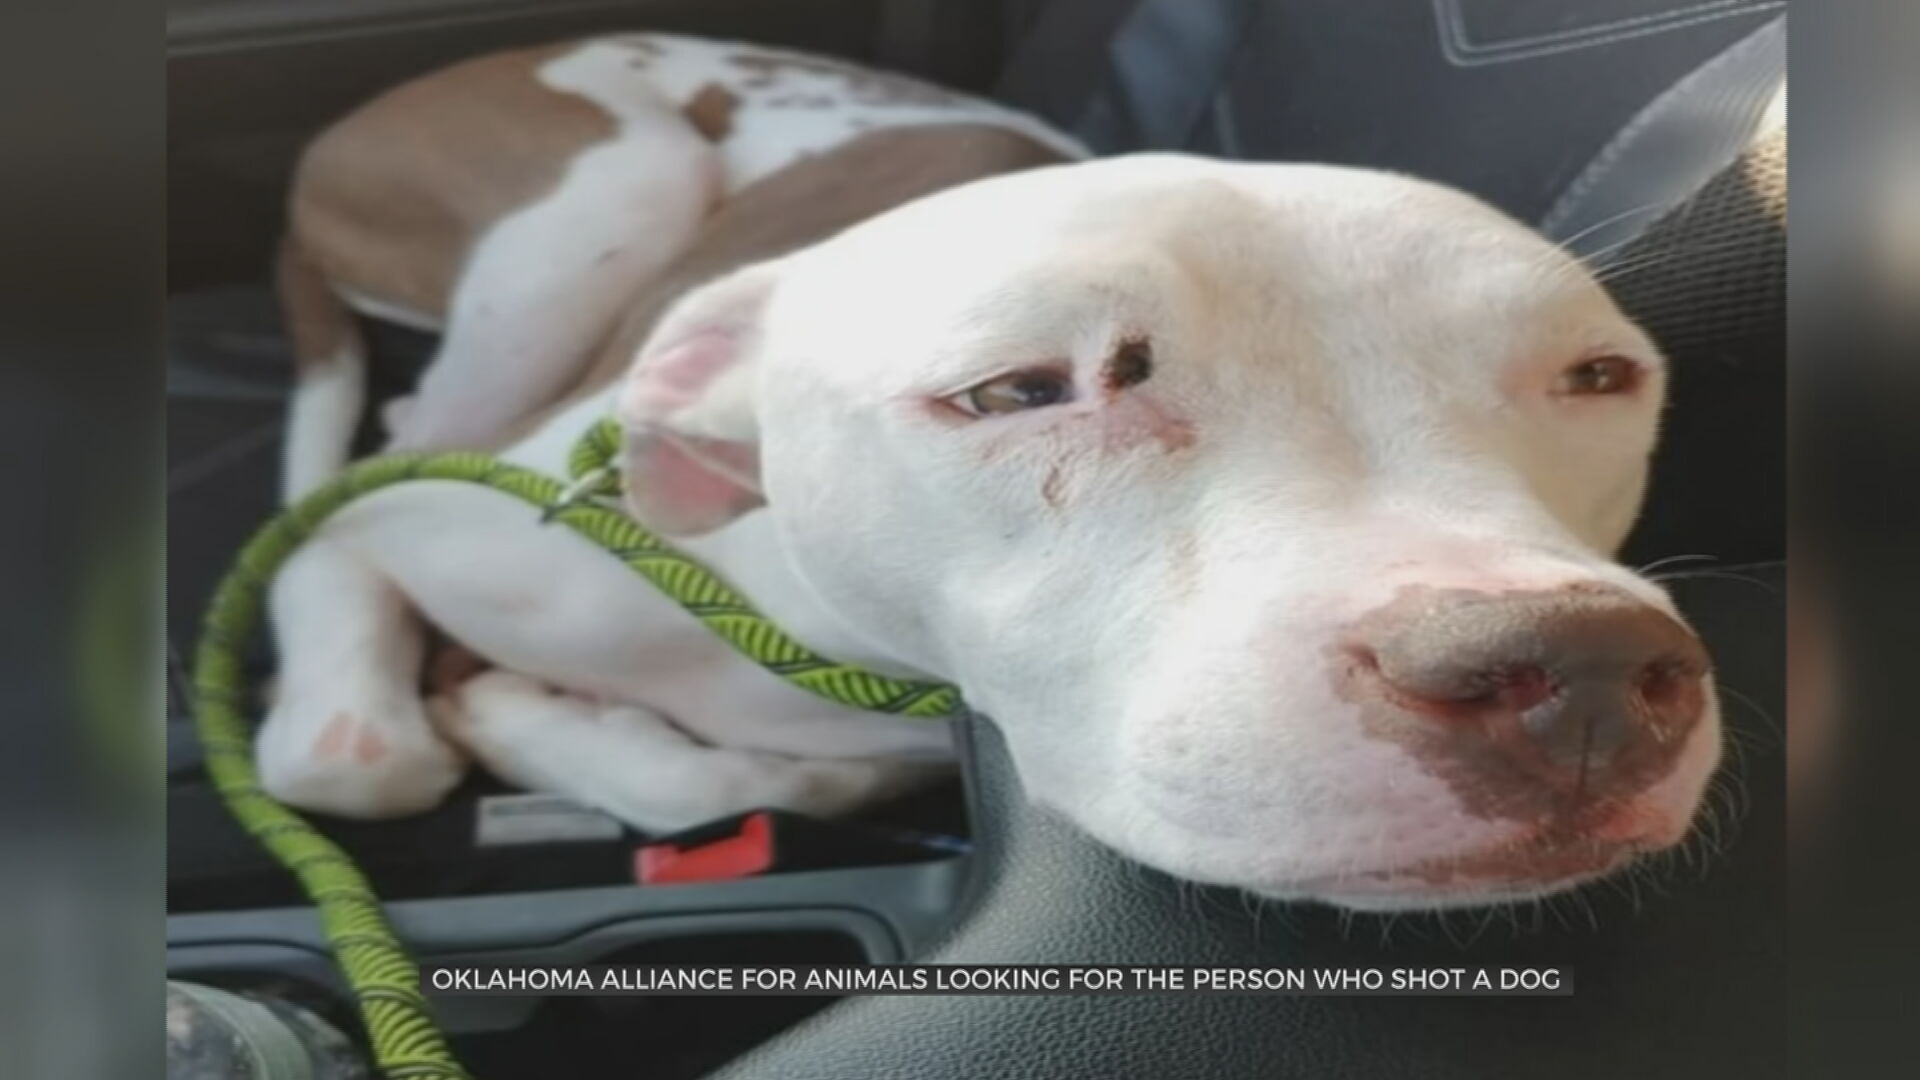 Oklahoma Alliance for Animals Wants Answers After Dog Shot In The Head